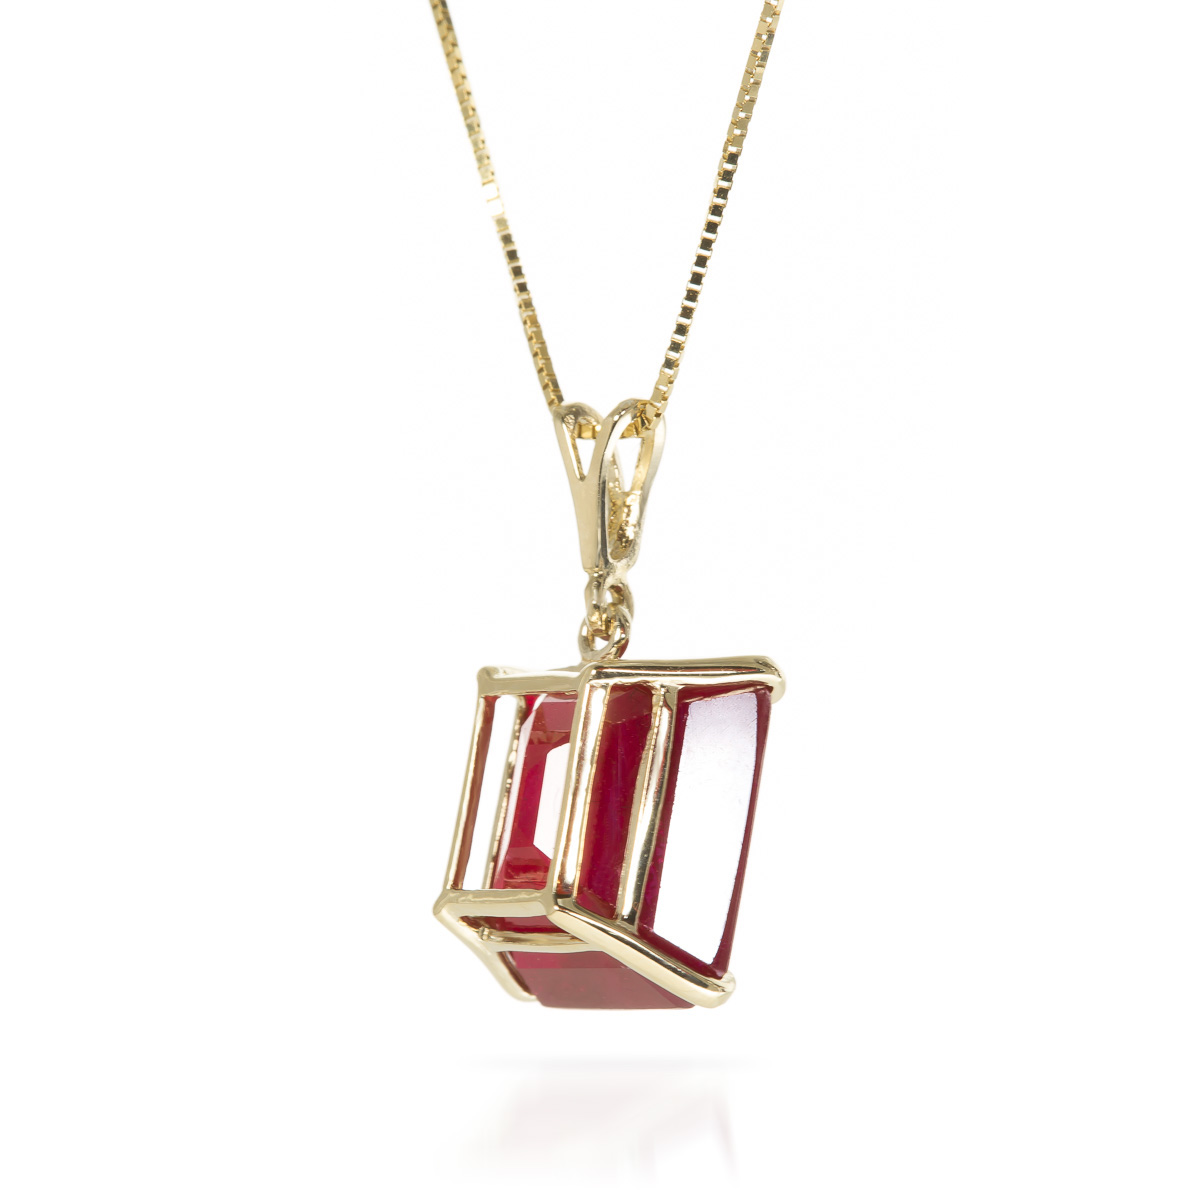 Ruby Pendant Necklace 6.5ct in 14K Gold